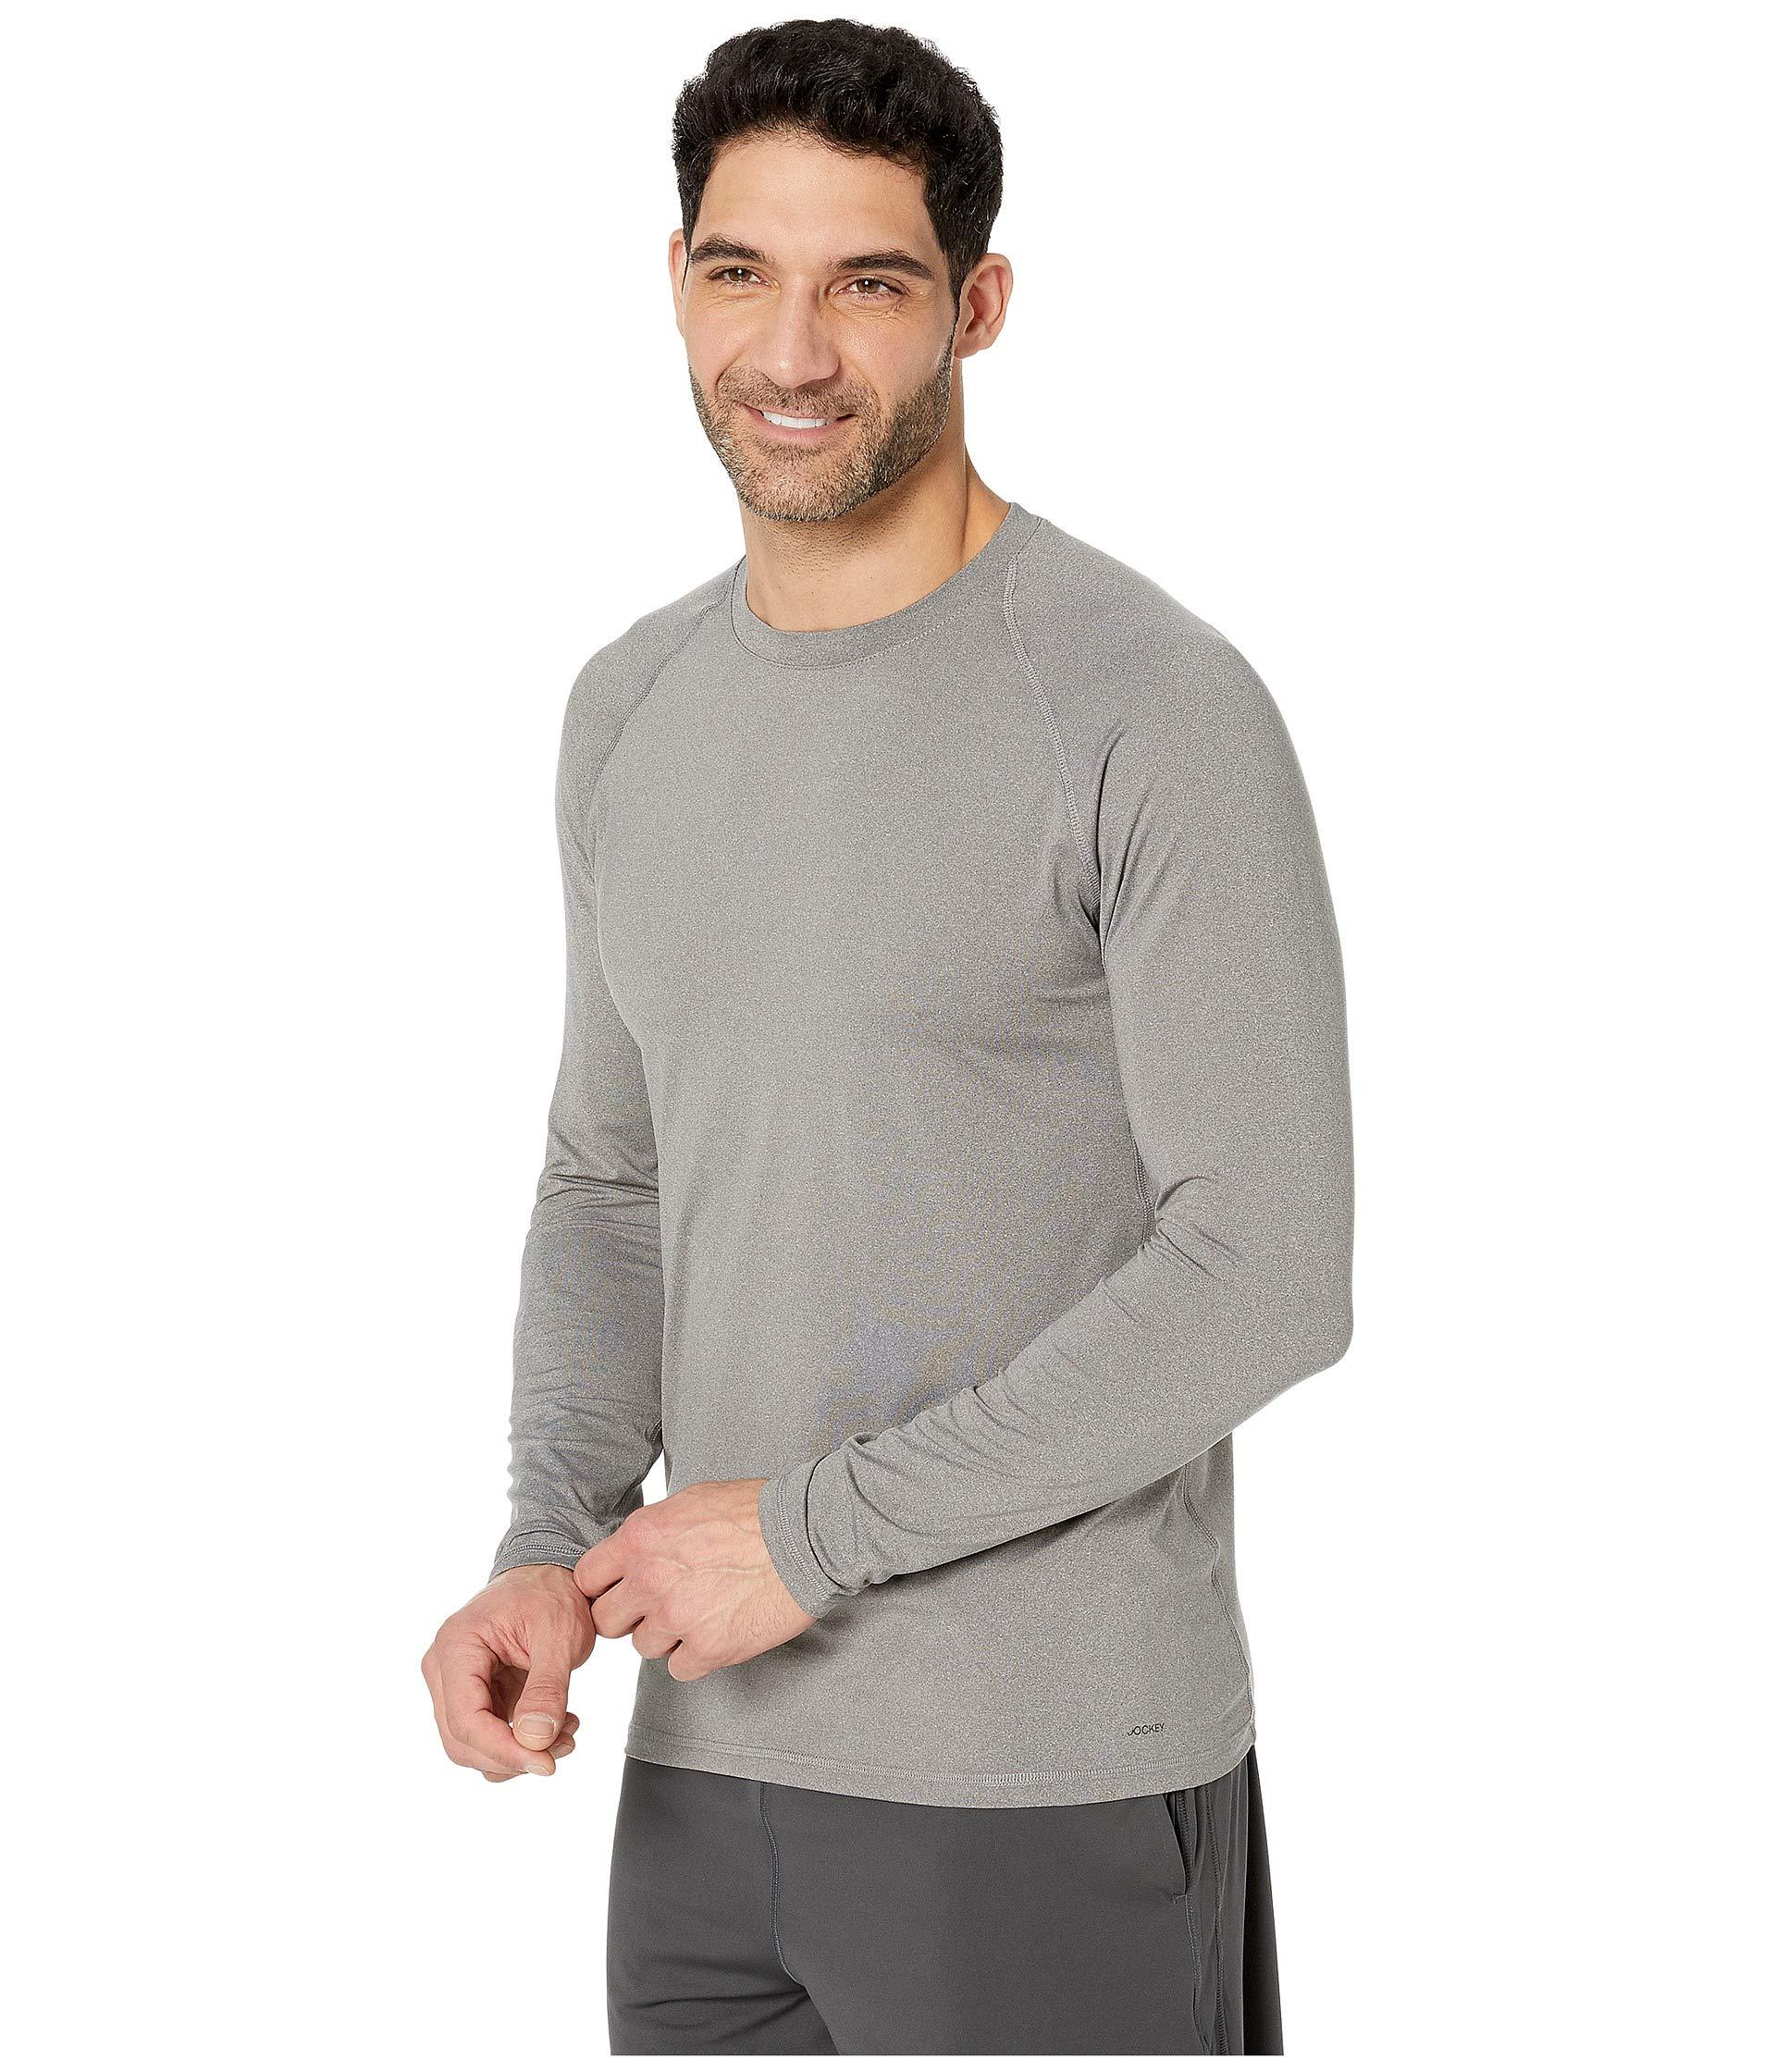 b47b313eef96 Lyst - Jockey Active Long Sleeve Sport Top (black) Men s Workout in Gray  for Men